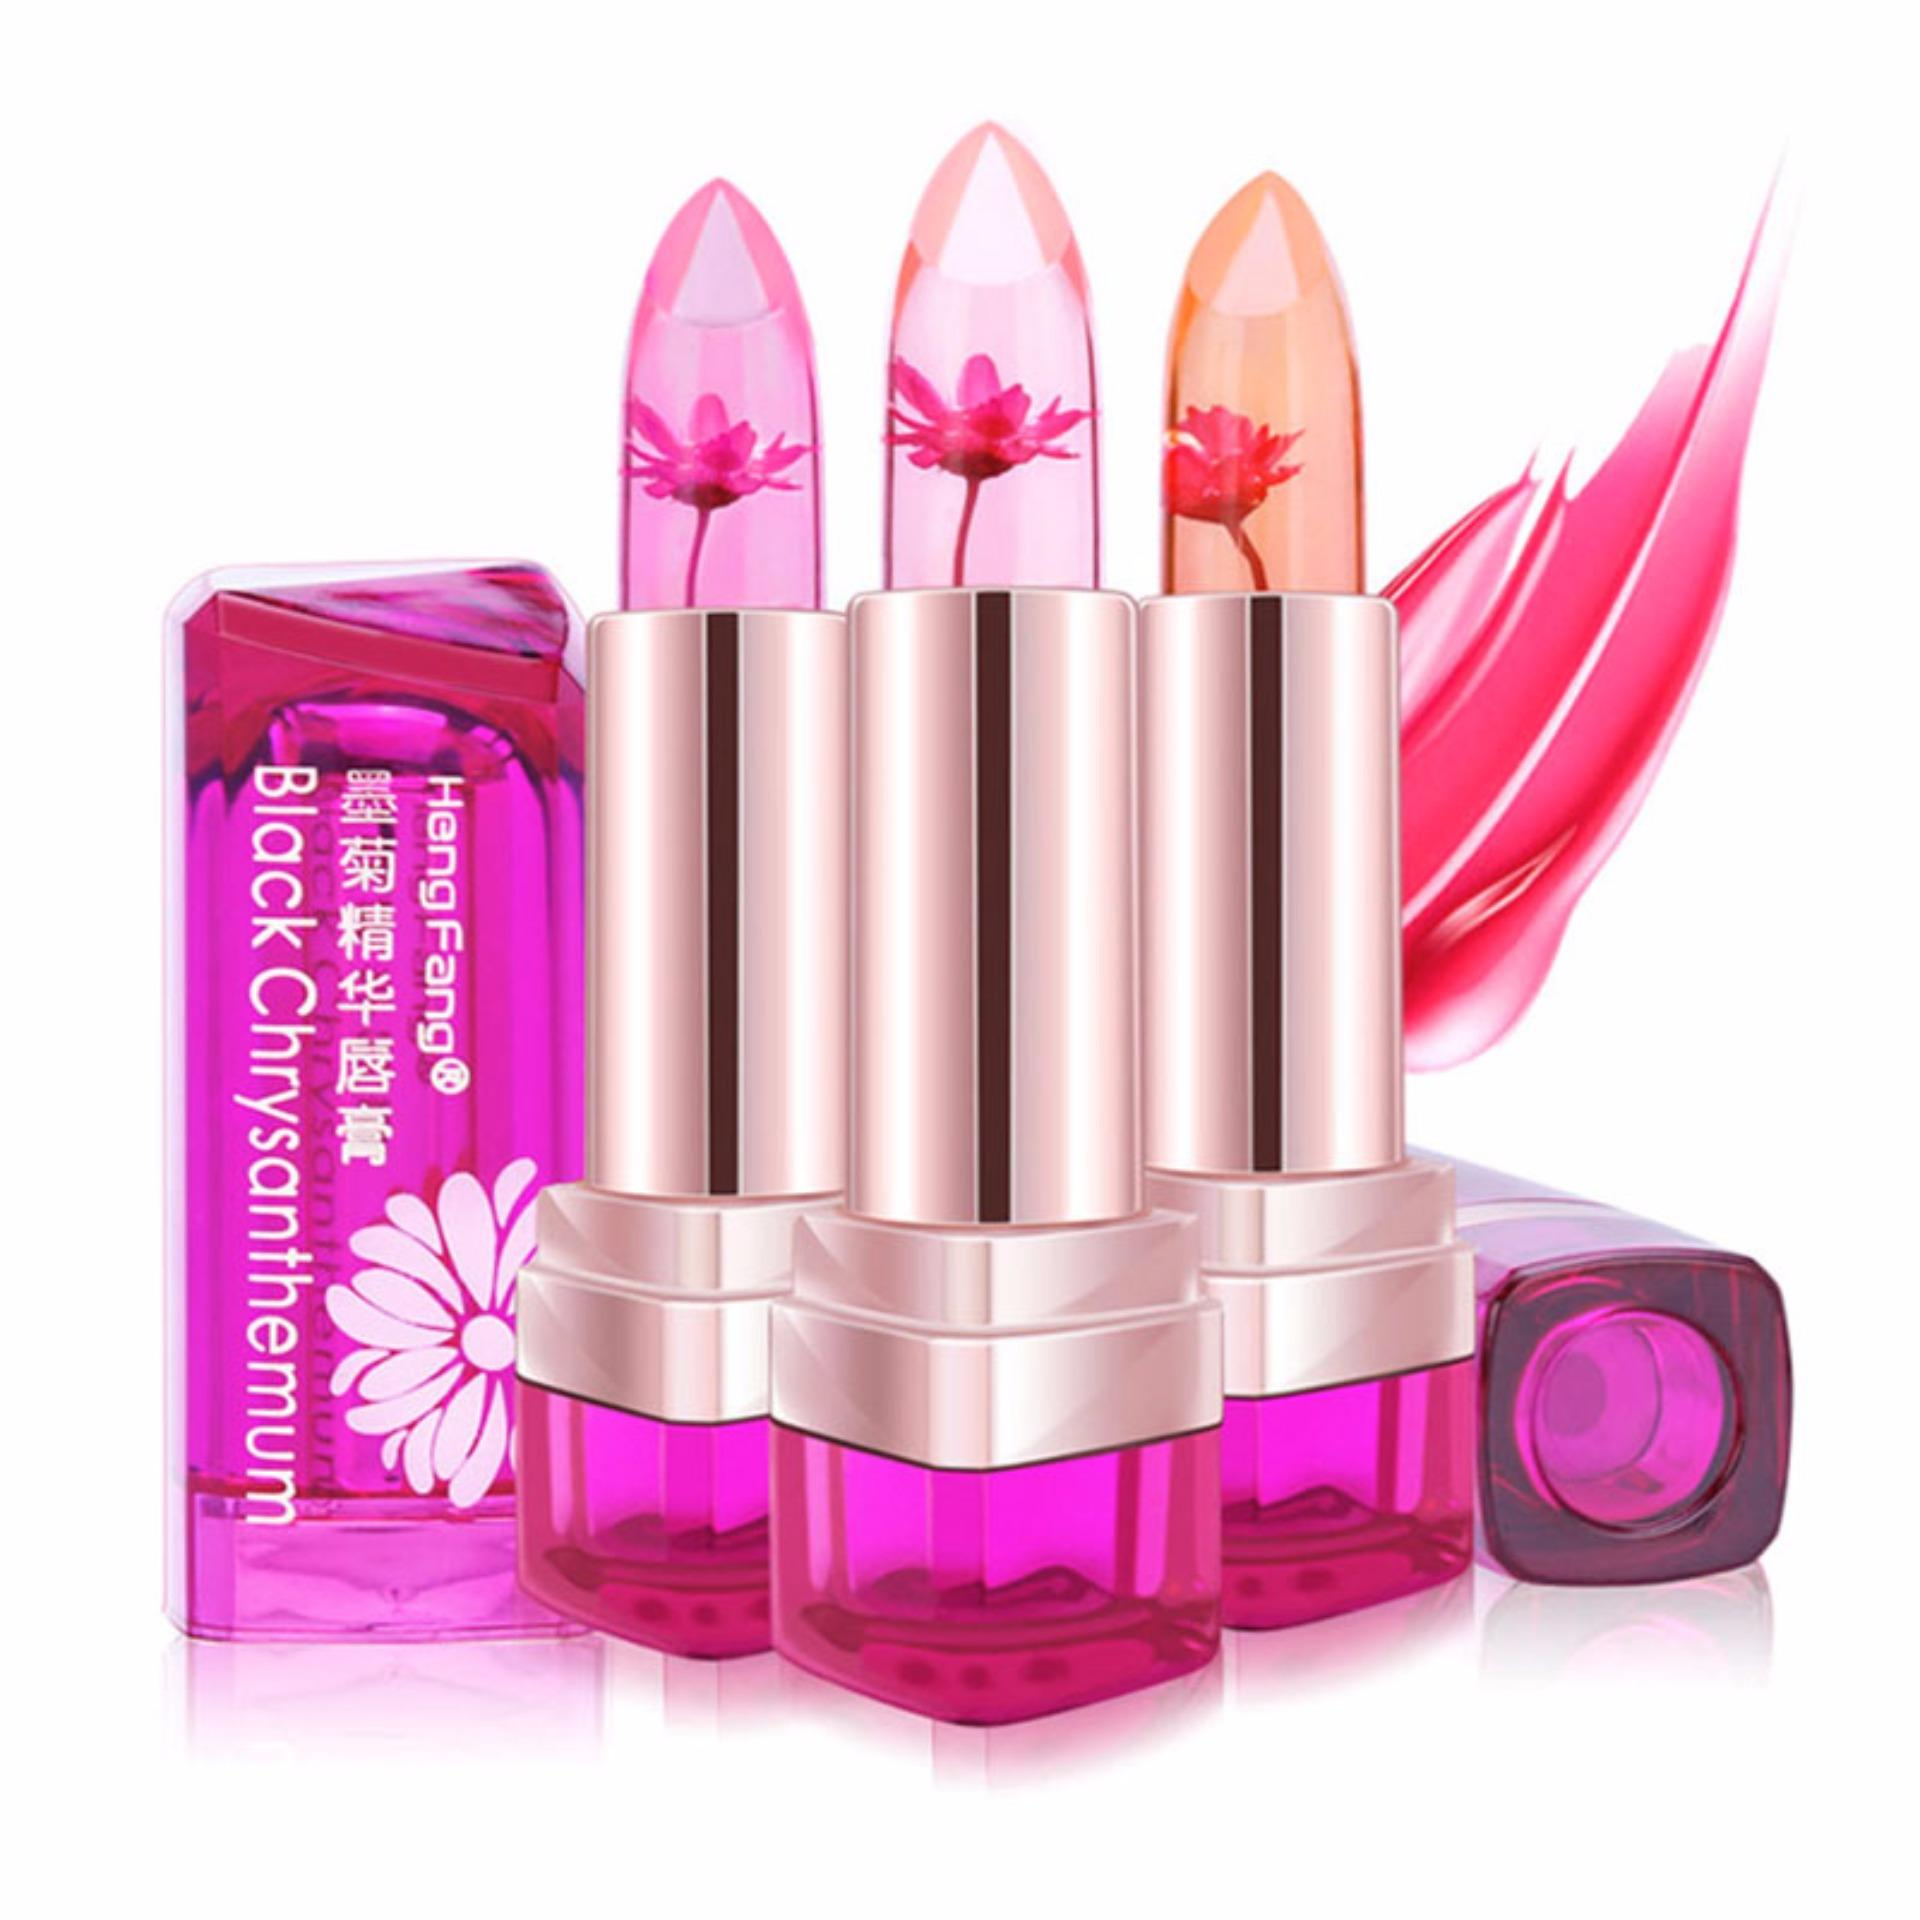 HengFang Magic Flower Lipstick 03 .